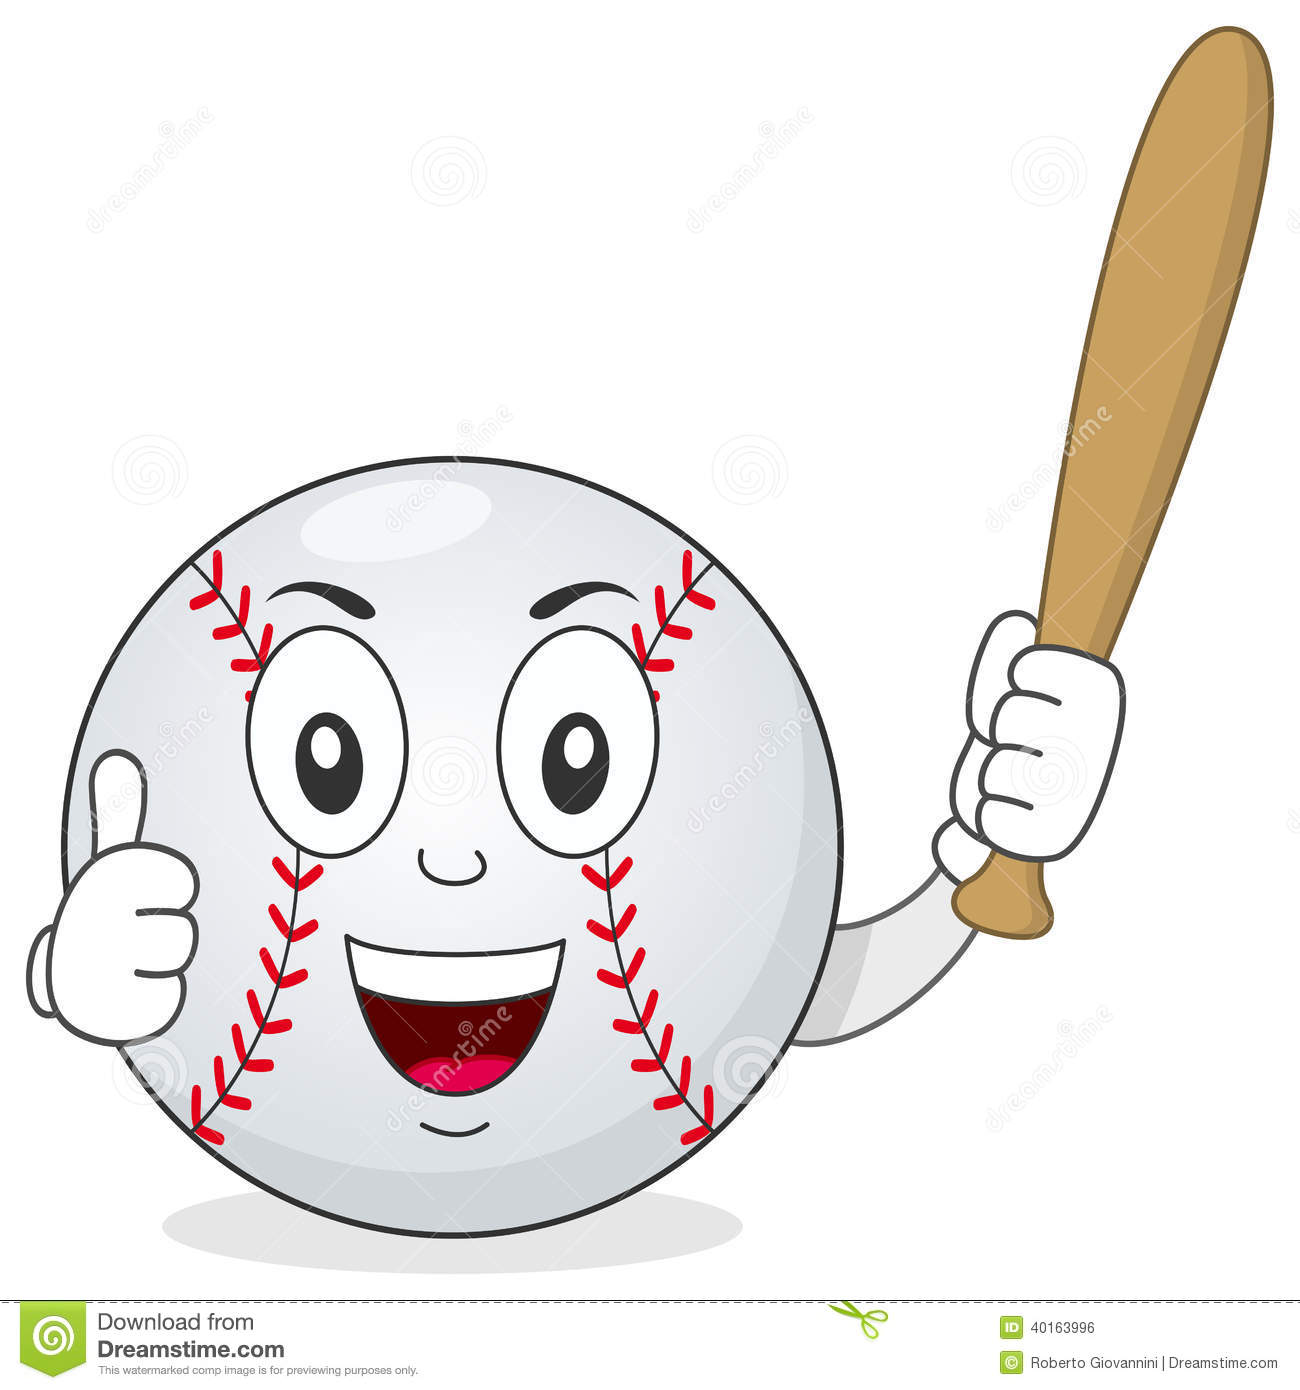 funny cartoon baseball character with thumbs up and holding a bat ...